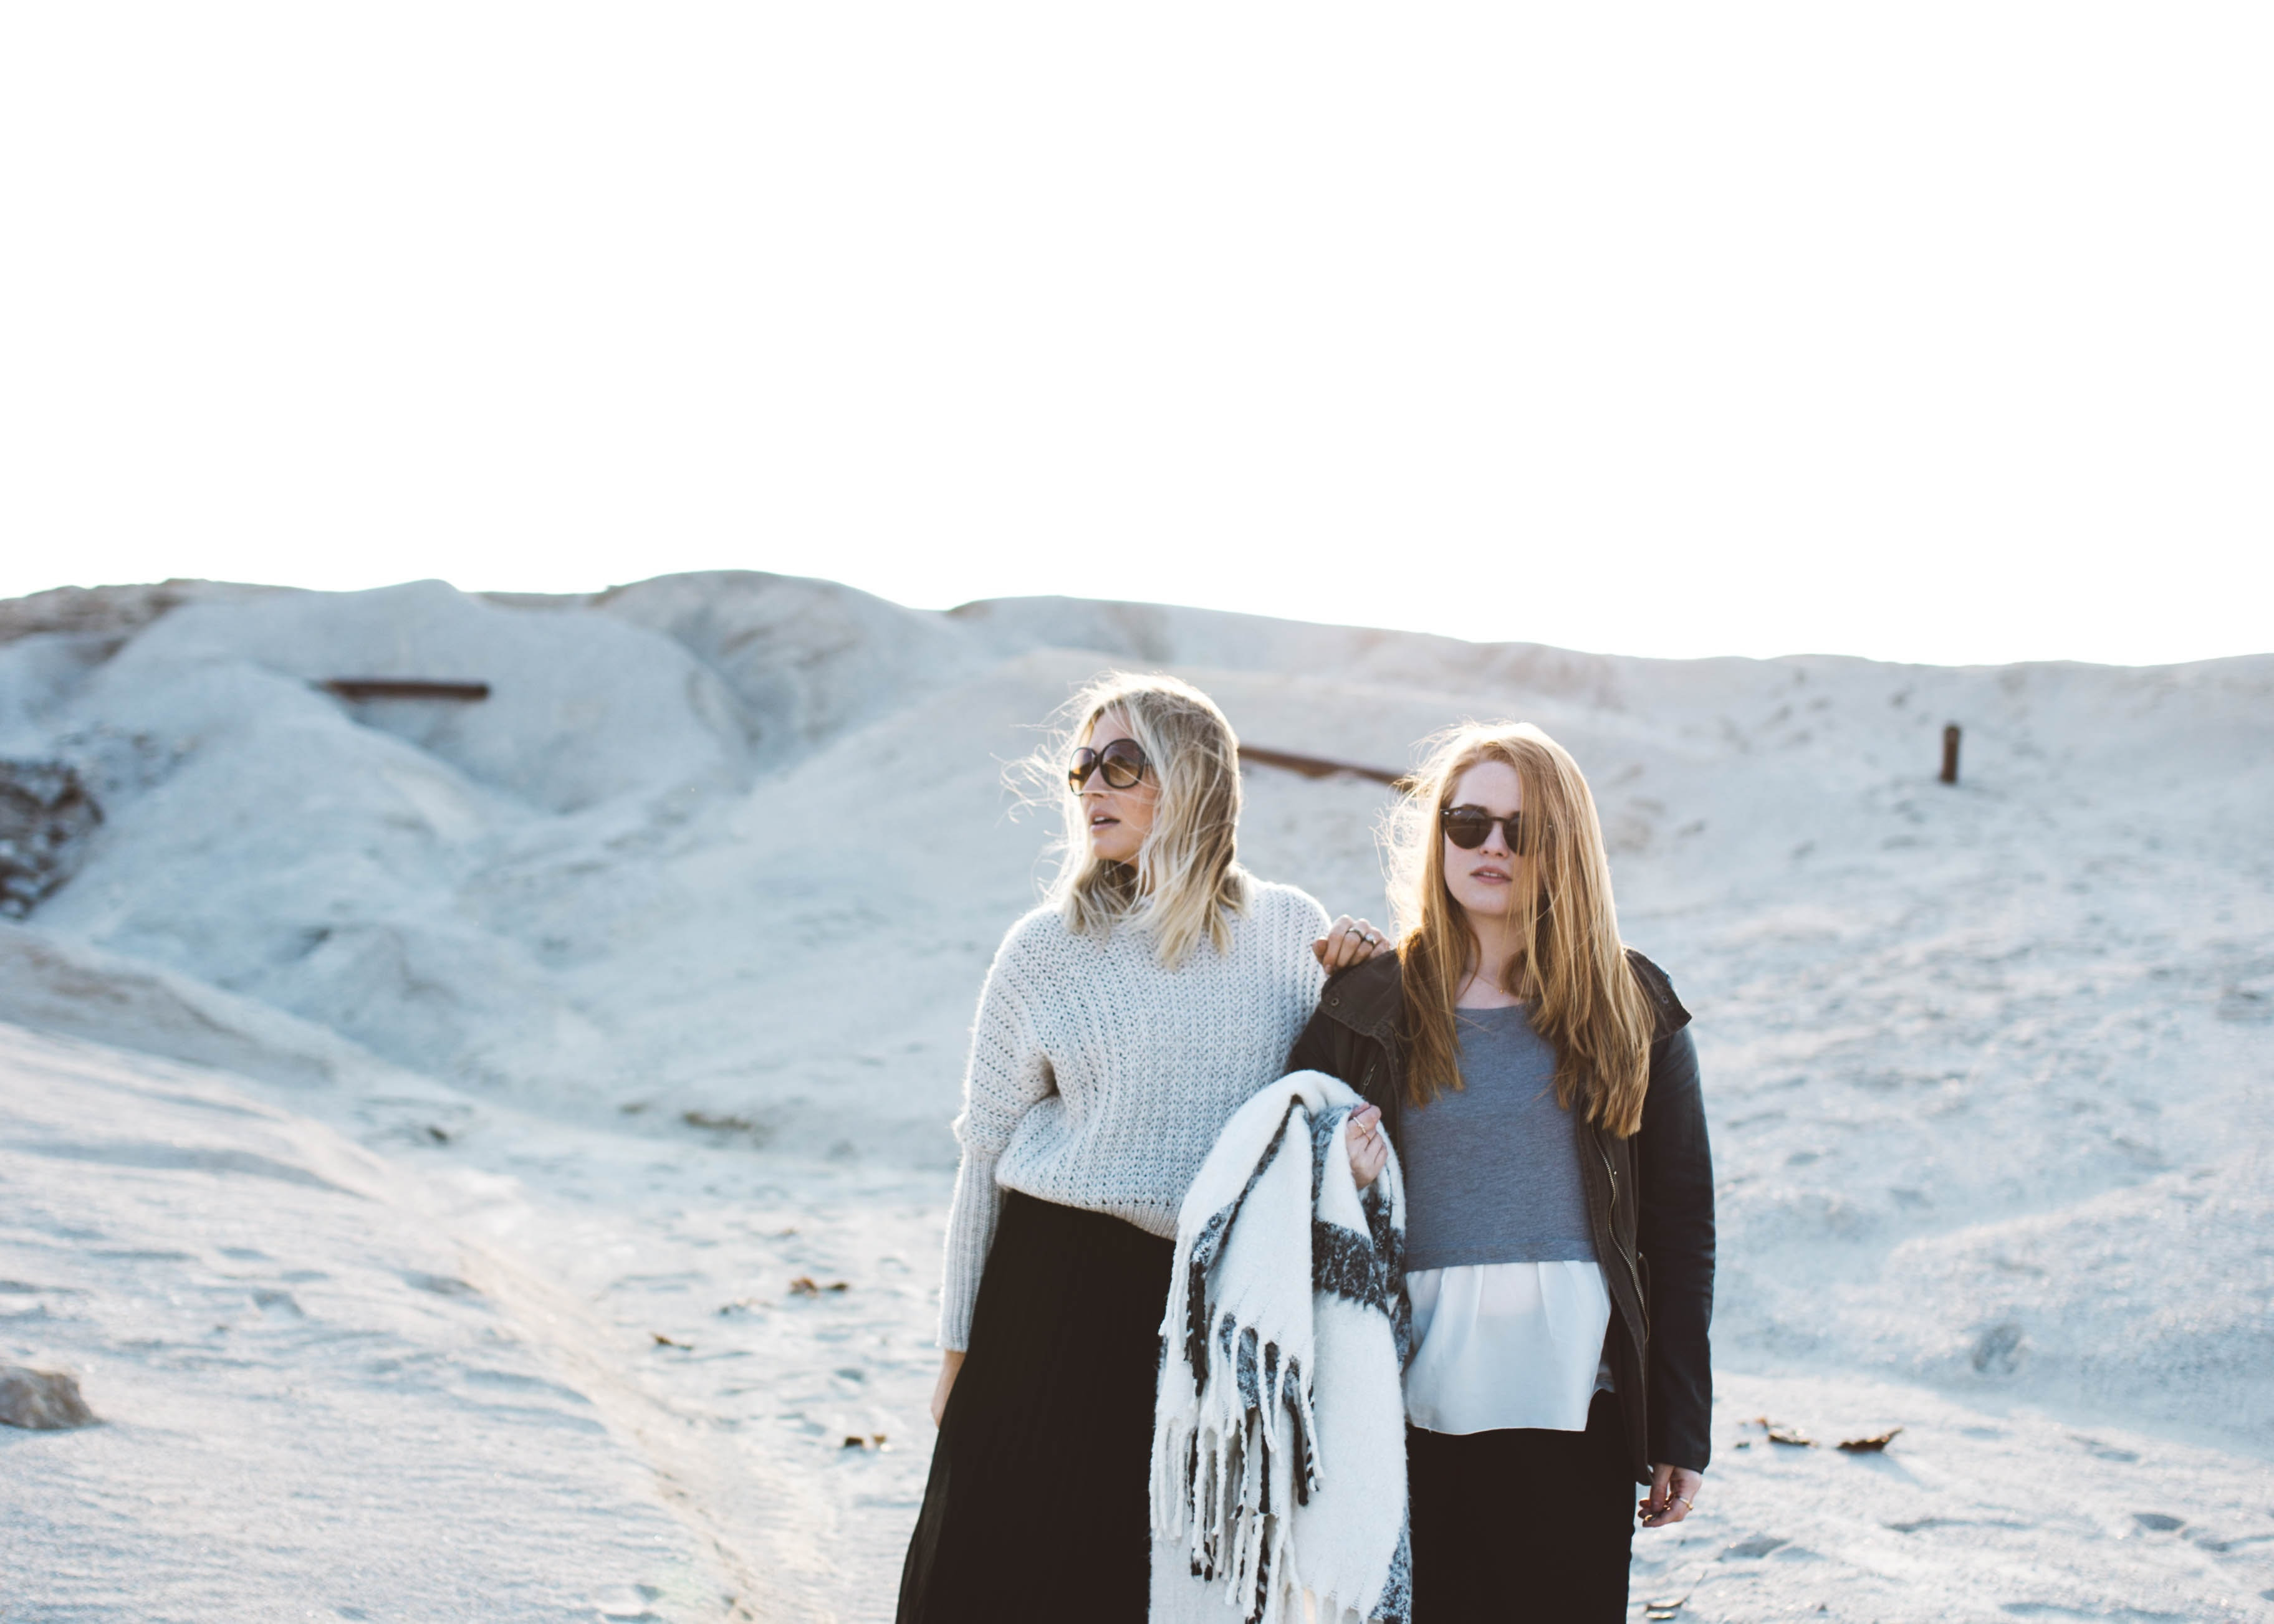 two women standing on snow covered surface